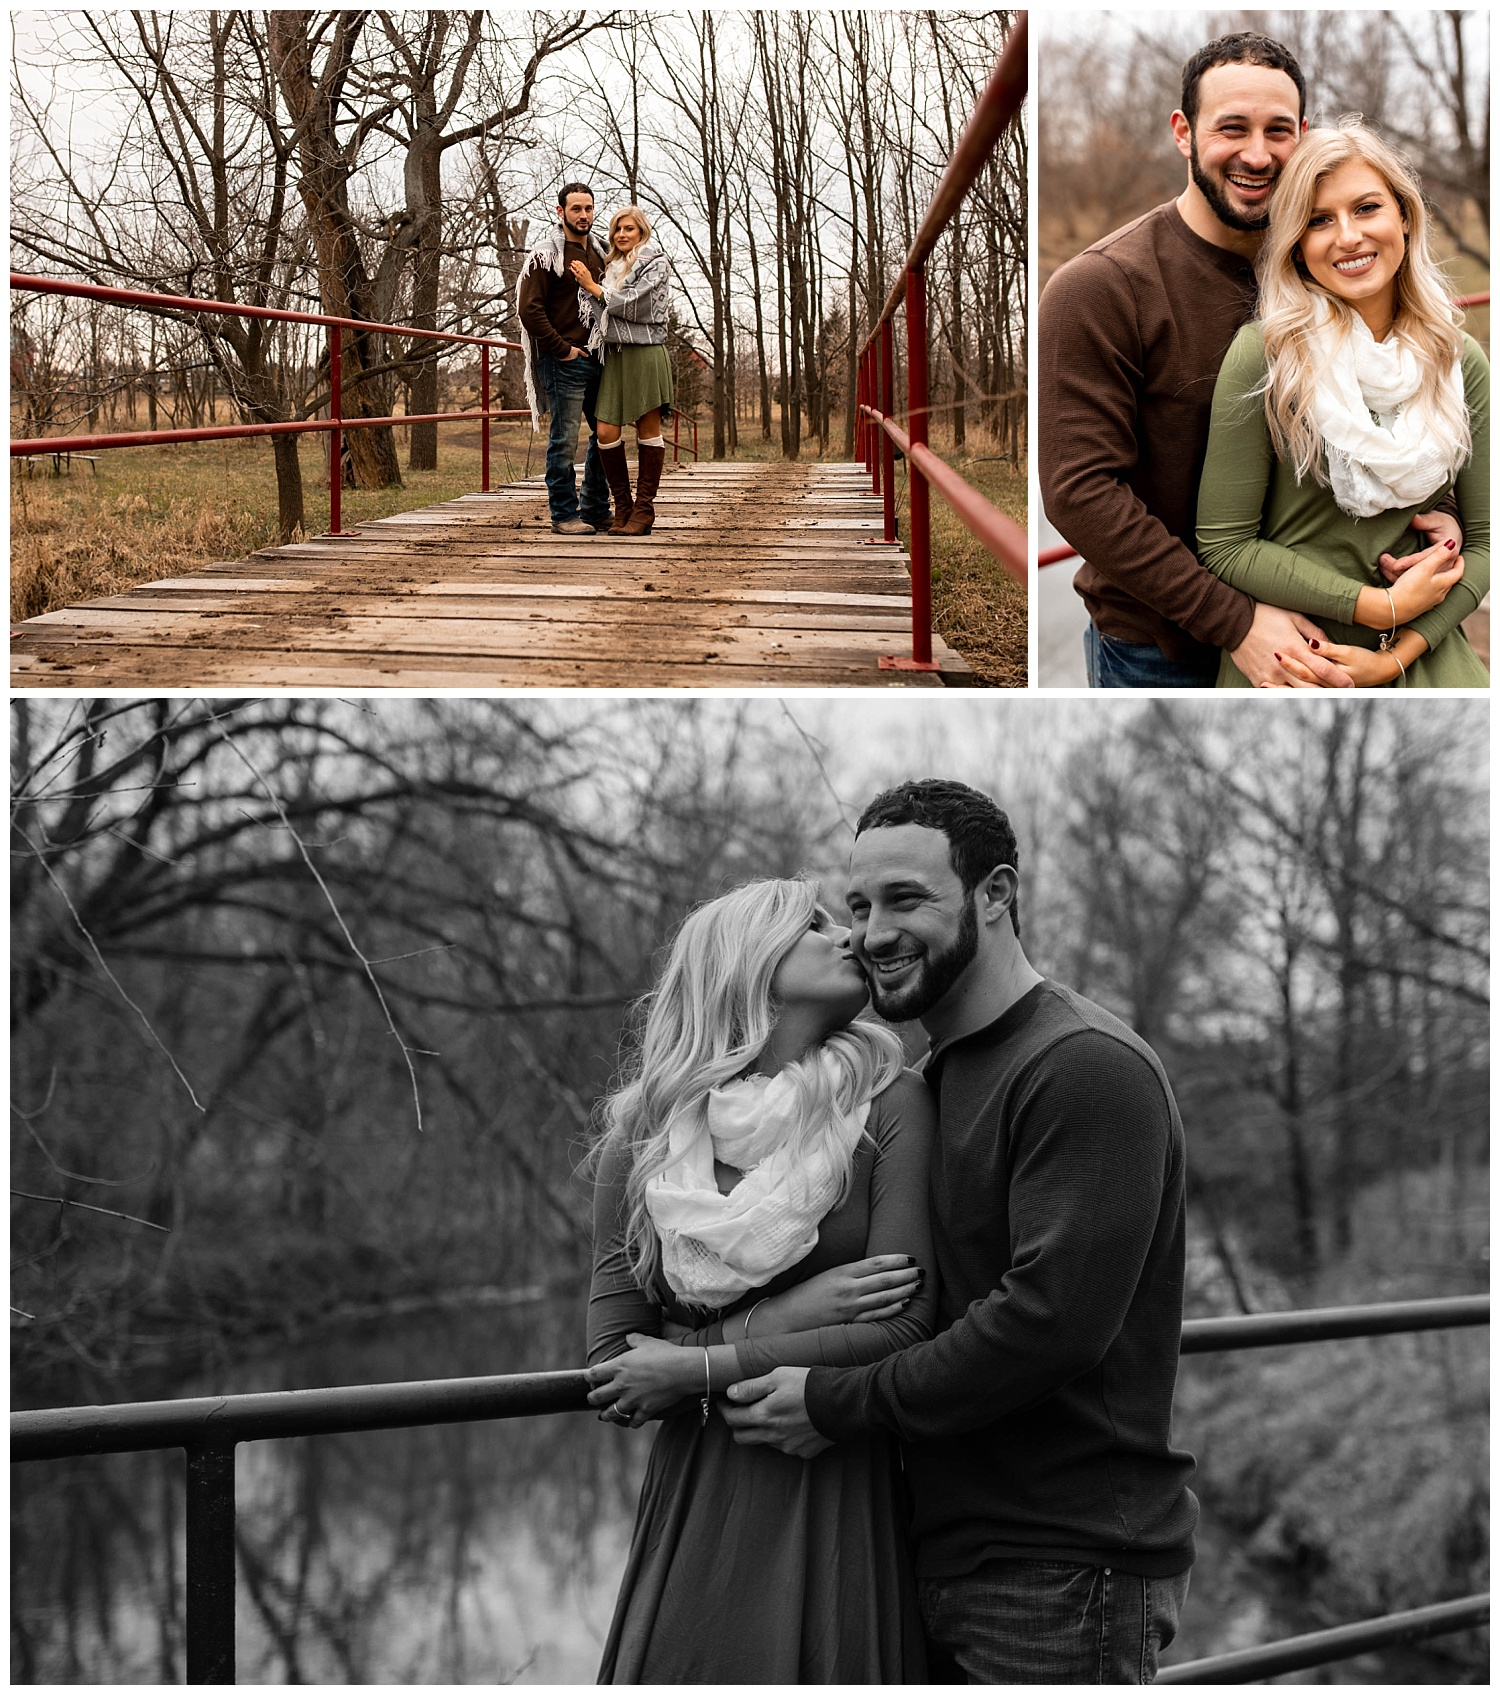 Christmas Tree Farms-Amanda & Jake Engagement_0203.jpg